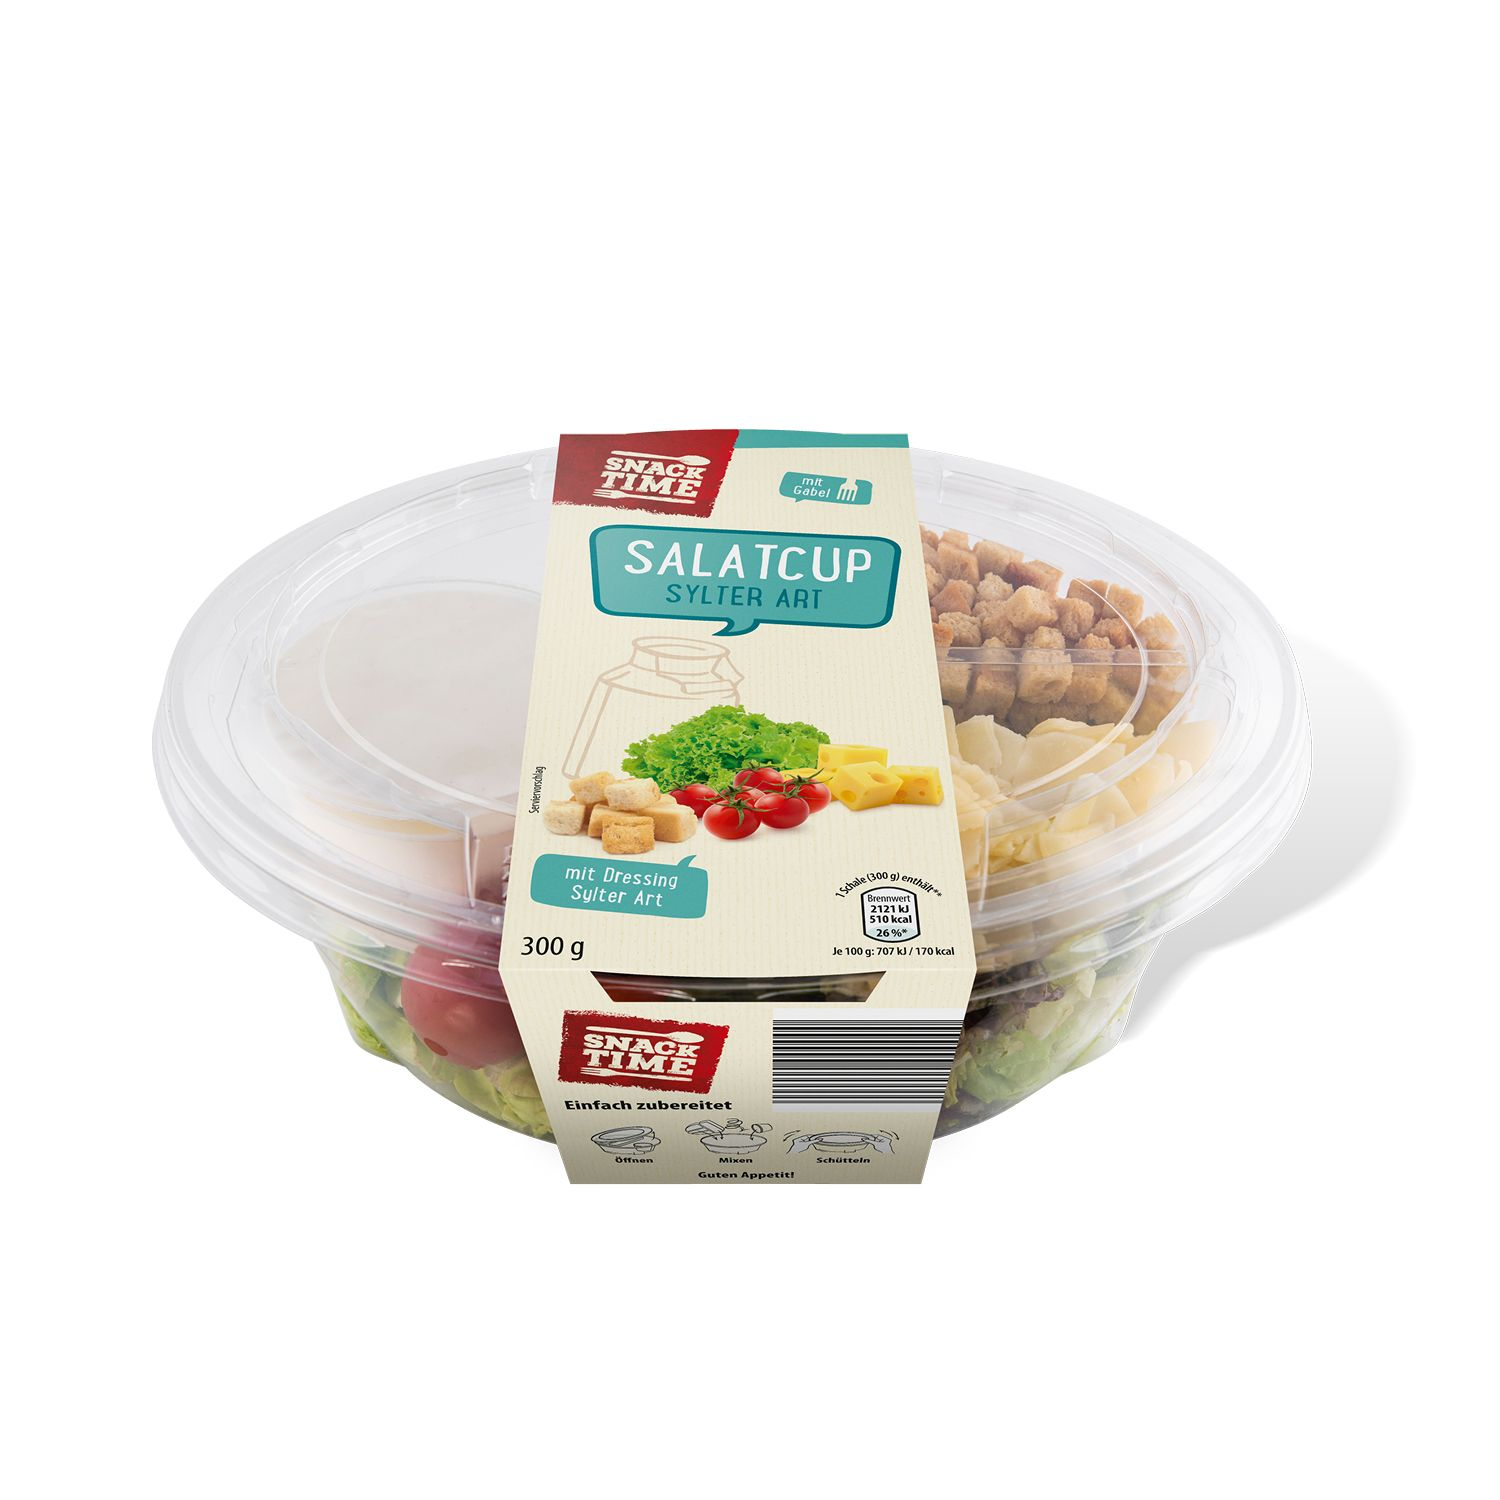 SNACK TIME Salatcup mit Dressing 300 g